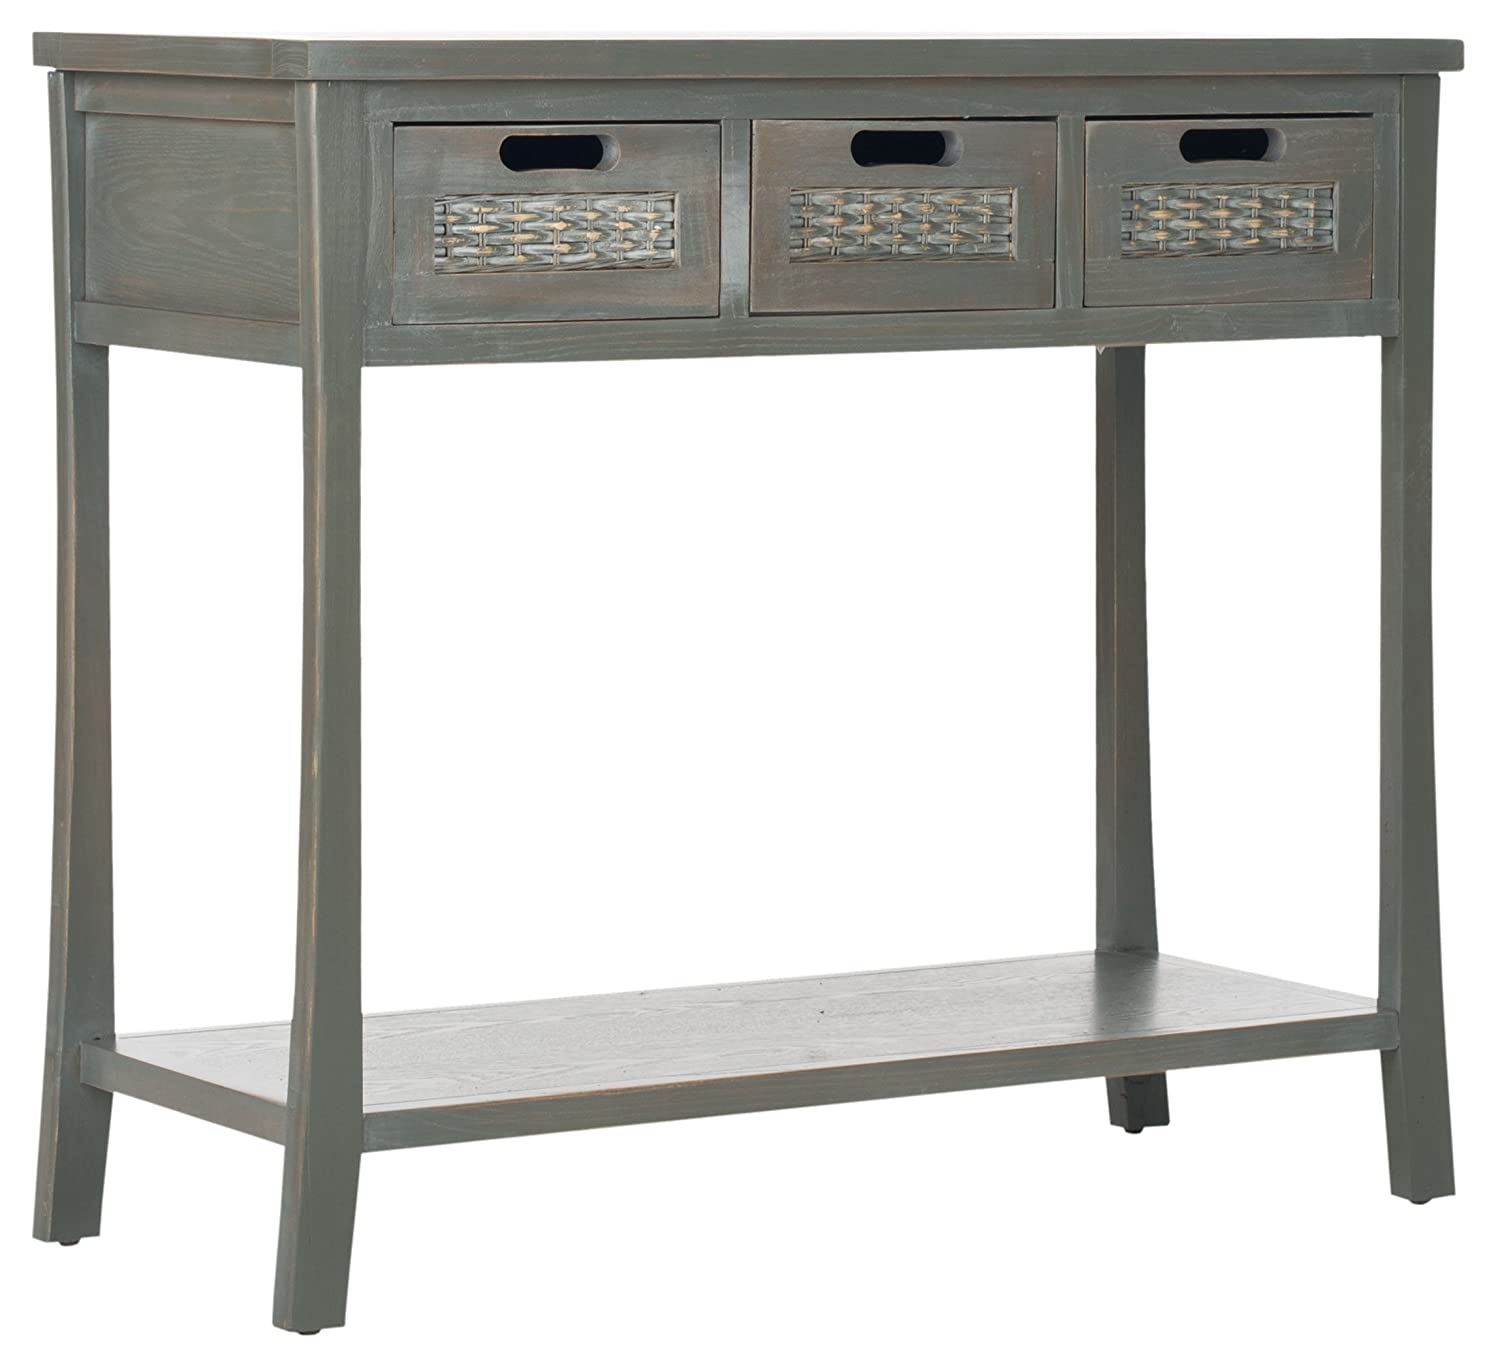 Amazon safavieh american homes collection autumn 3 drawer amazon safavieh american homes collection autumn 3 drawer console table blue grey kitchen dining geotapseo Choice Image